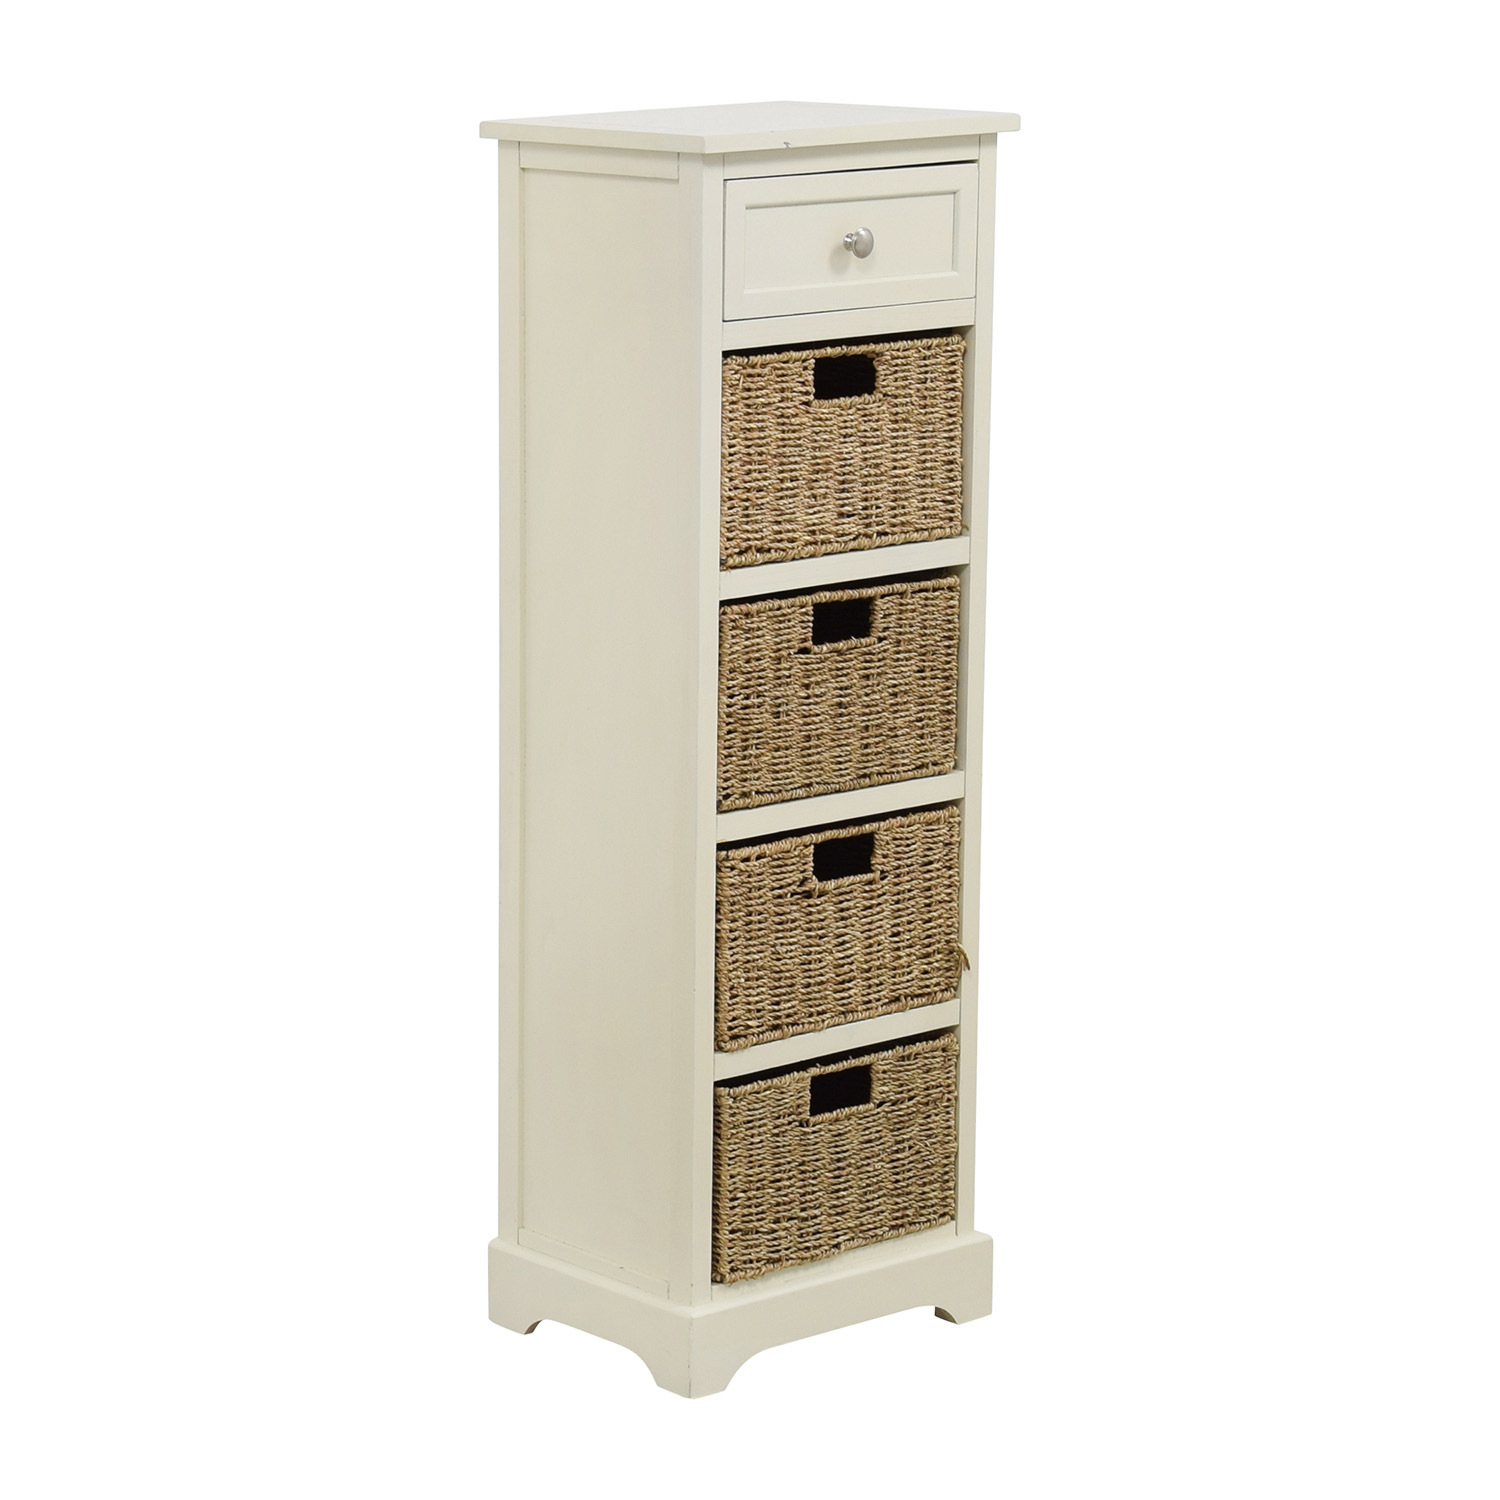 Completely new 28% OFF - Tall White Storage Unit with Drawer and Wicker Baskets  EW91